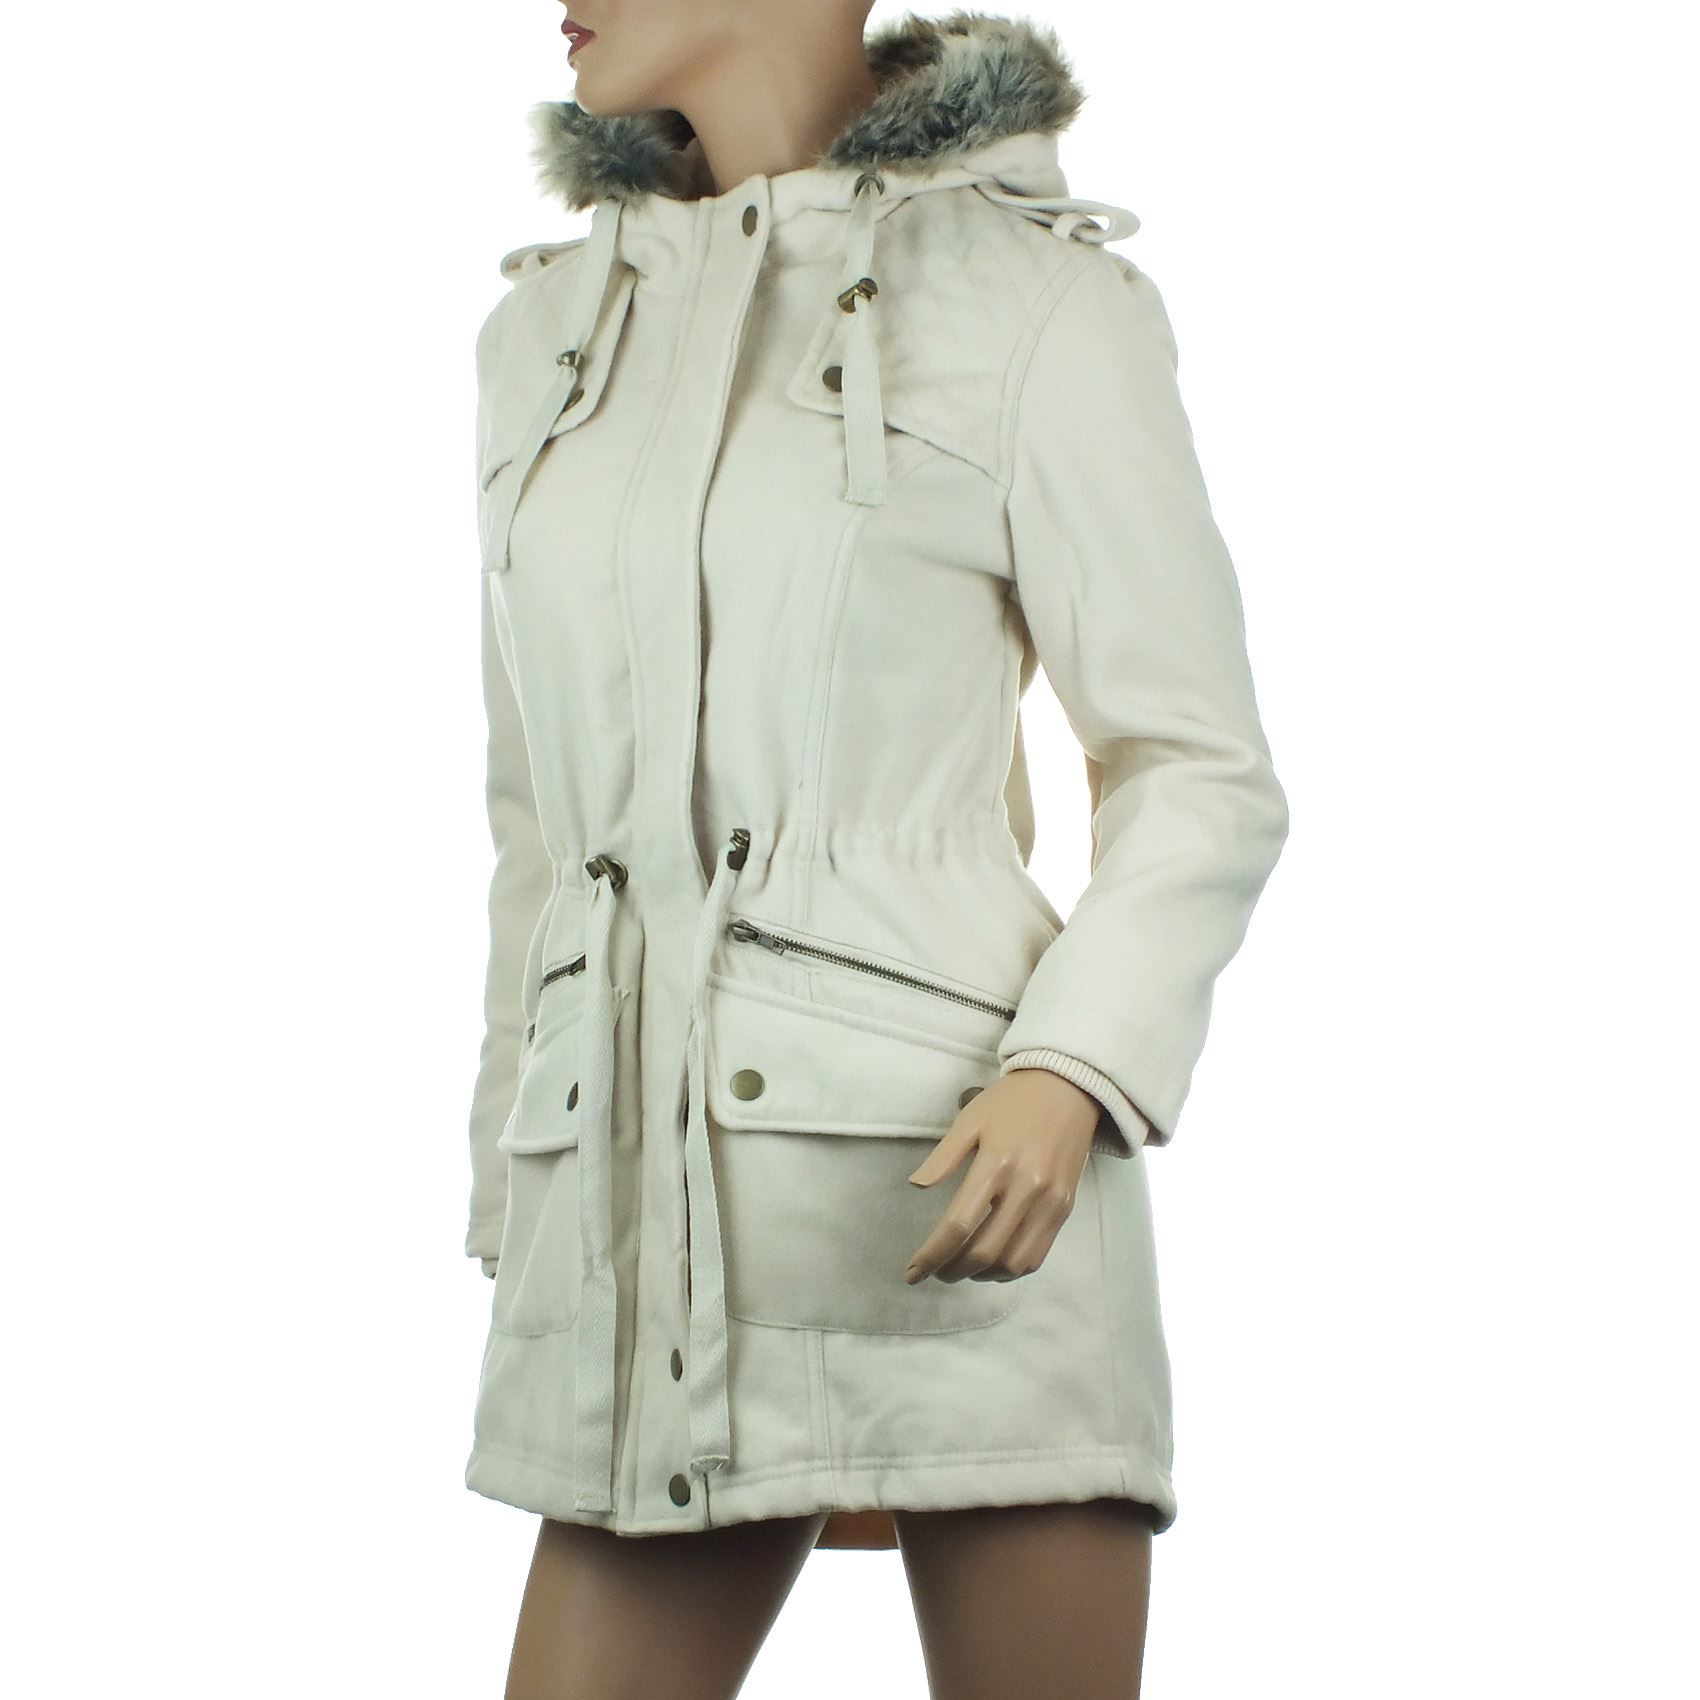 Best prices on Cream wool winter coat in Women's Jackets & Coats online. Visit Bizrate to find the best deals on top brands. Read reviews on Clothing & Accessories merchants and buy with confidence.